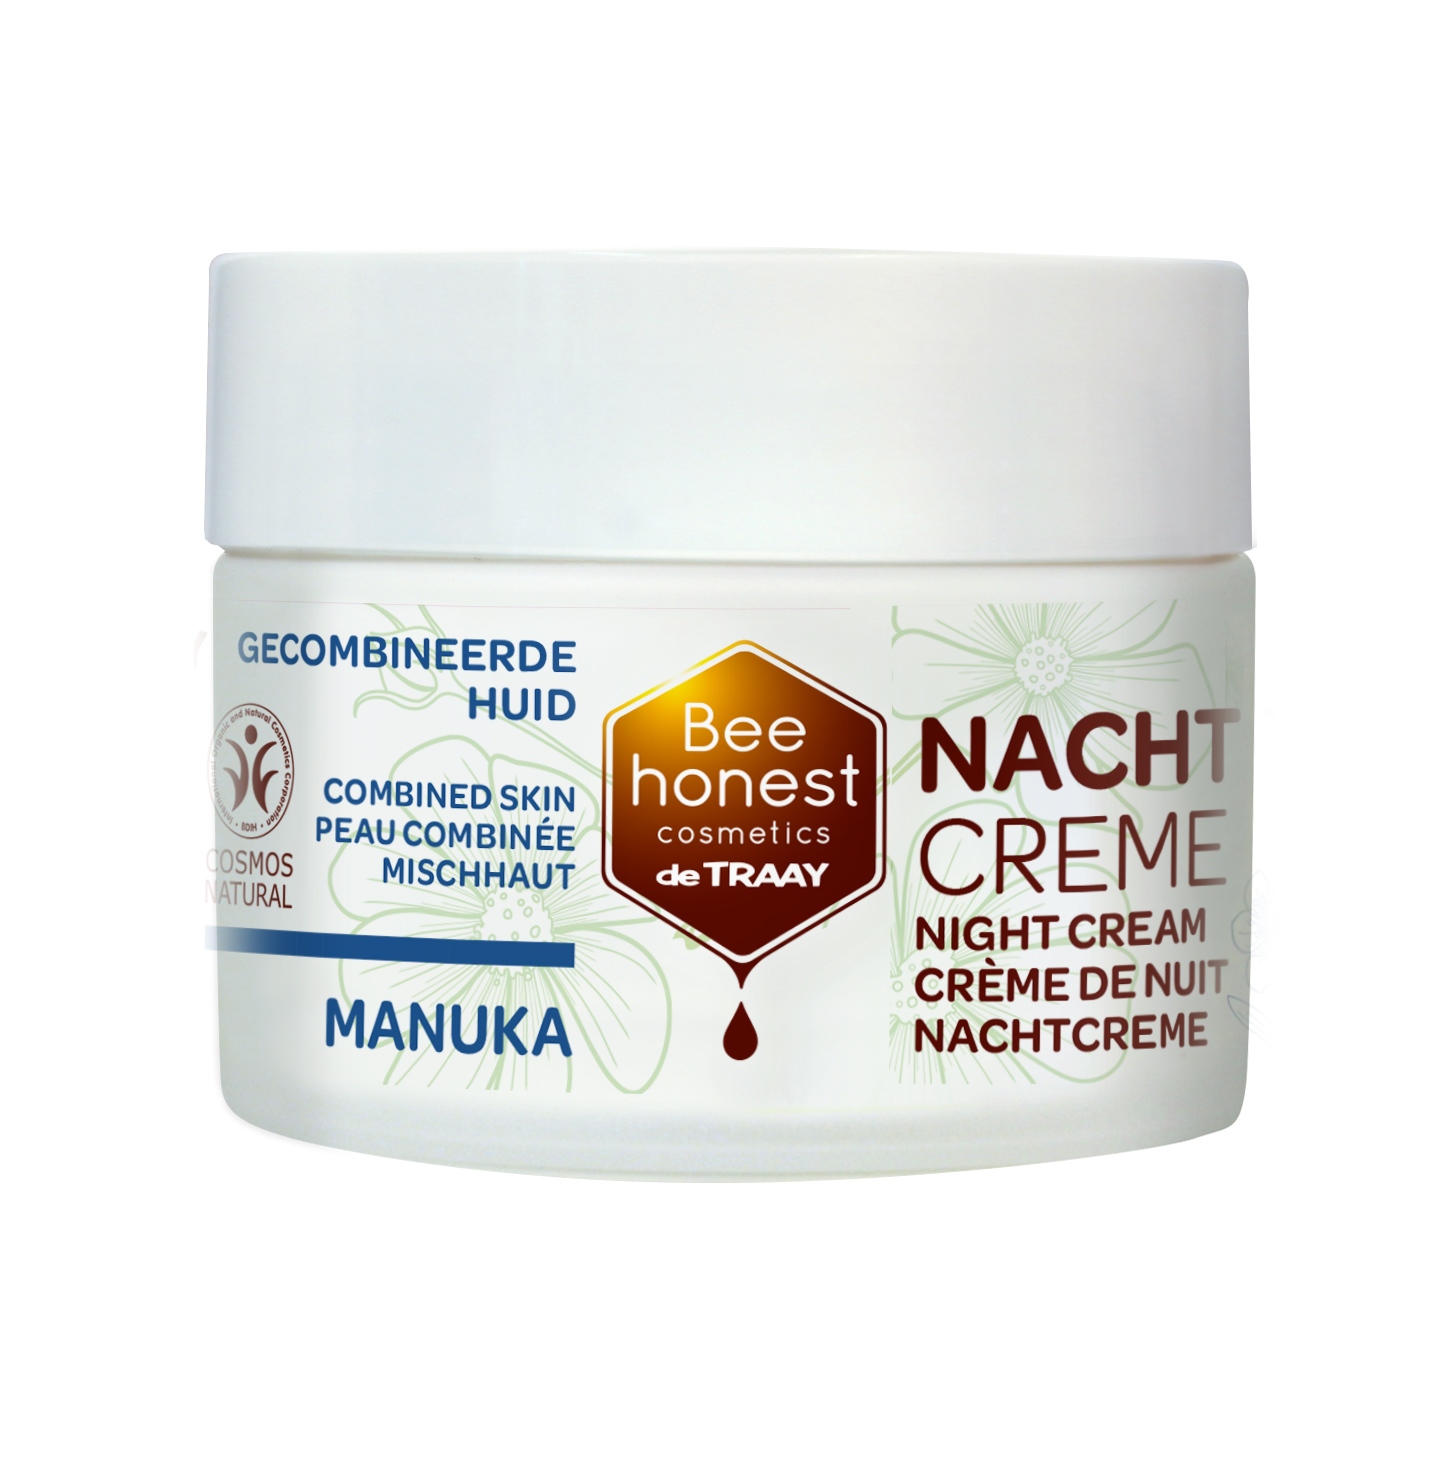 Night cream Manuka